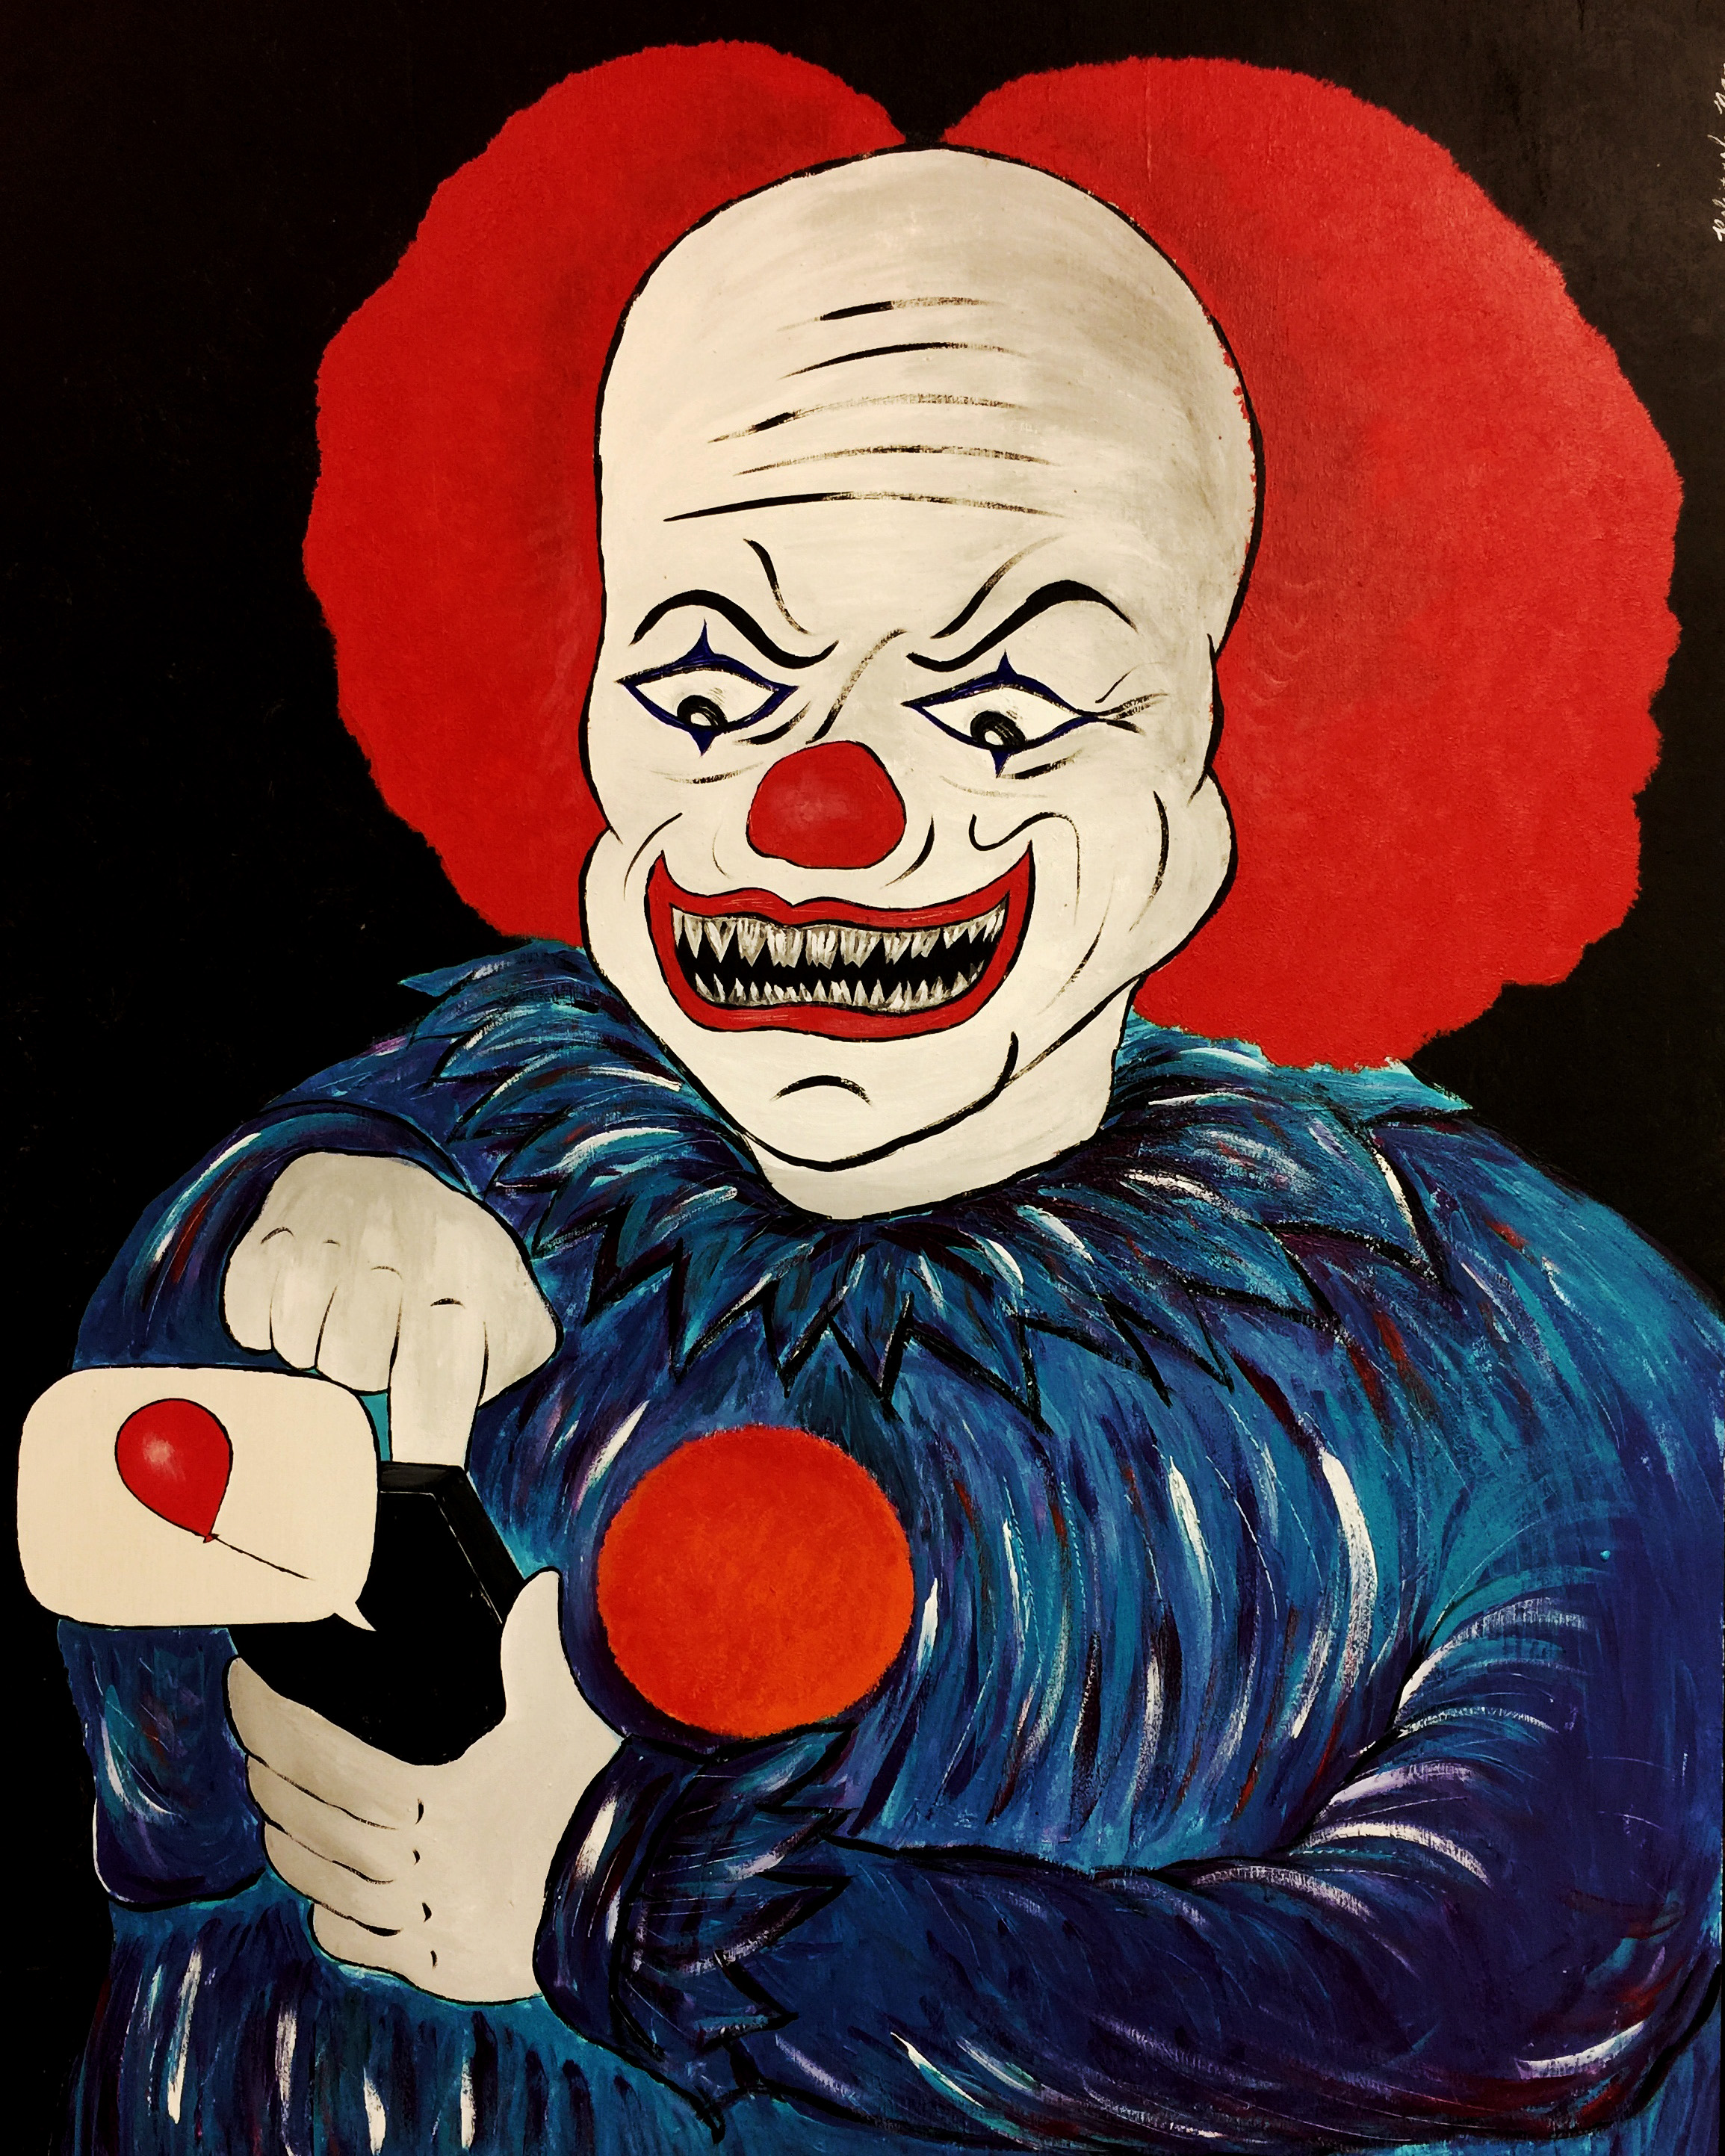 PENNYWISE TEXTING